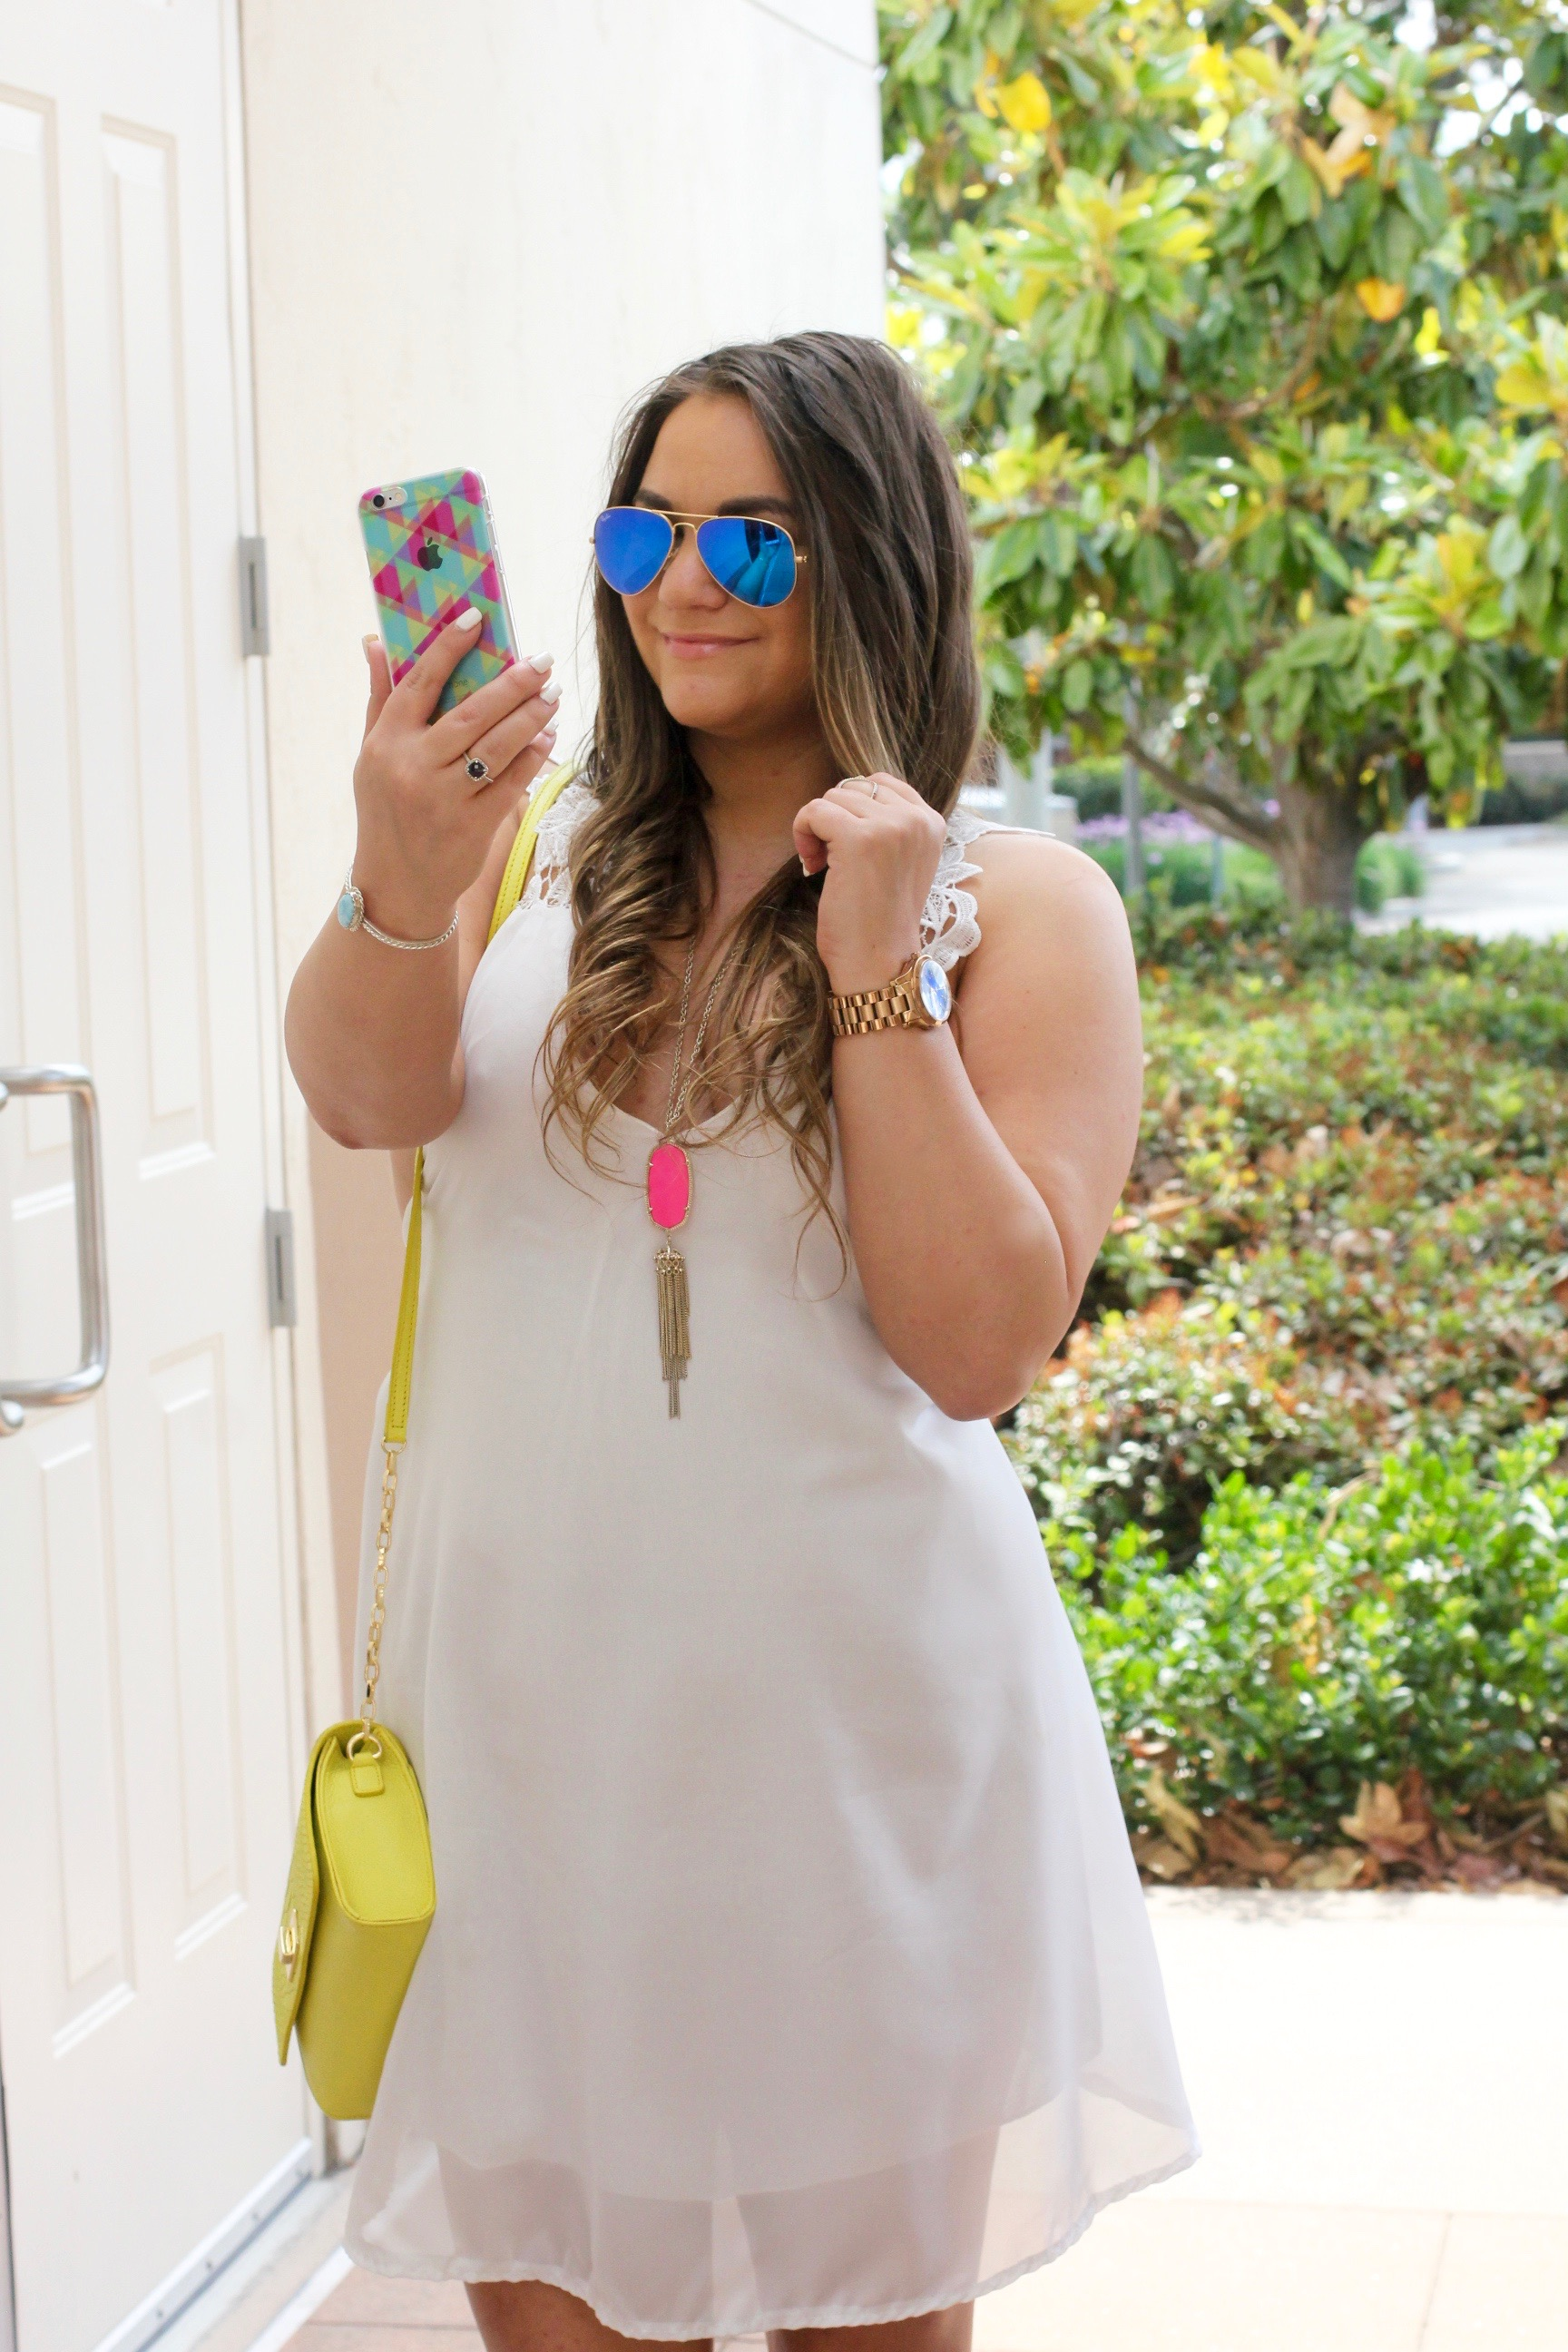 missyonmadison, melissa tierney, fashion blog, fashion blogger, style blog, style blogger, lwd, little white dress, nina shoes, floral heels, colorful heels, summer style, gigi ny, gigi ny crossbody, neon yellow bag, yellow crossbody bag, ray bans, kendra scott necklace, kendra scott rayne necklace, pink tassel necklace, white open back dress, white criss cross dress, colorful heeled sandals, la blogger, brunette hair, summer style,